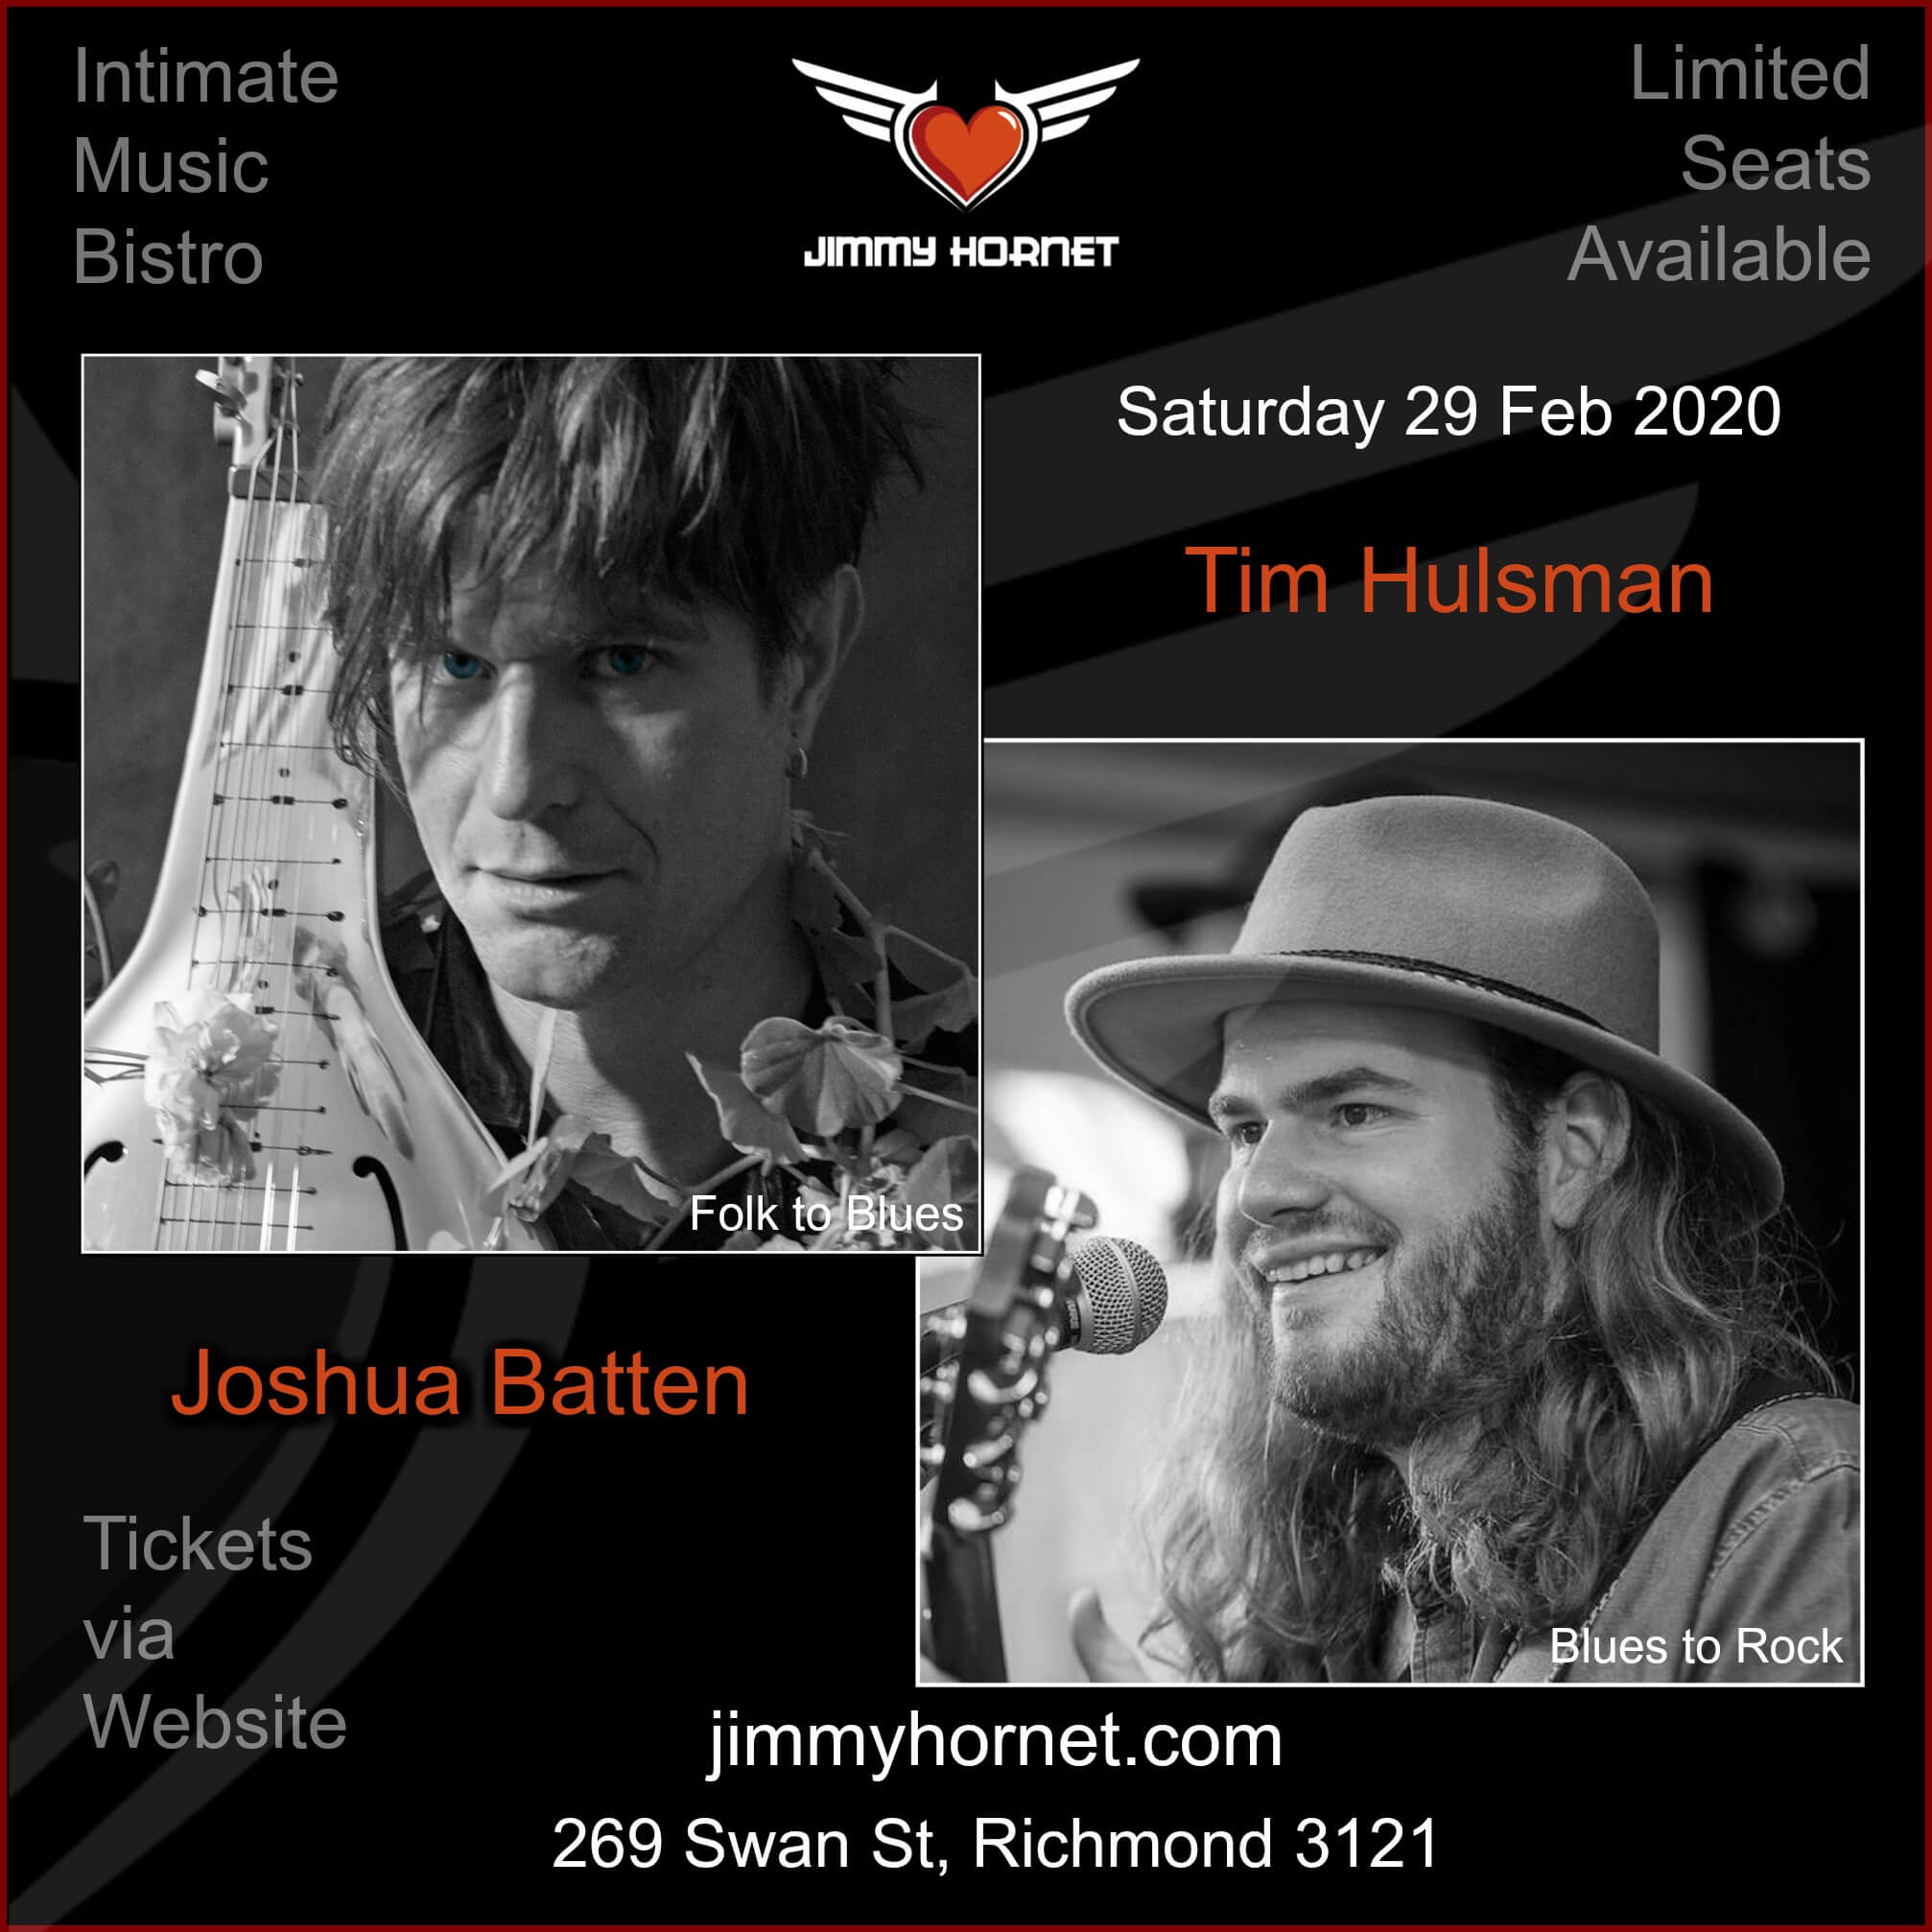 Tim Hulsman and Joshua Batten